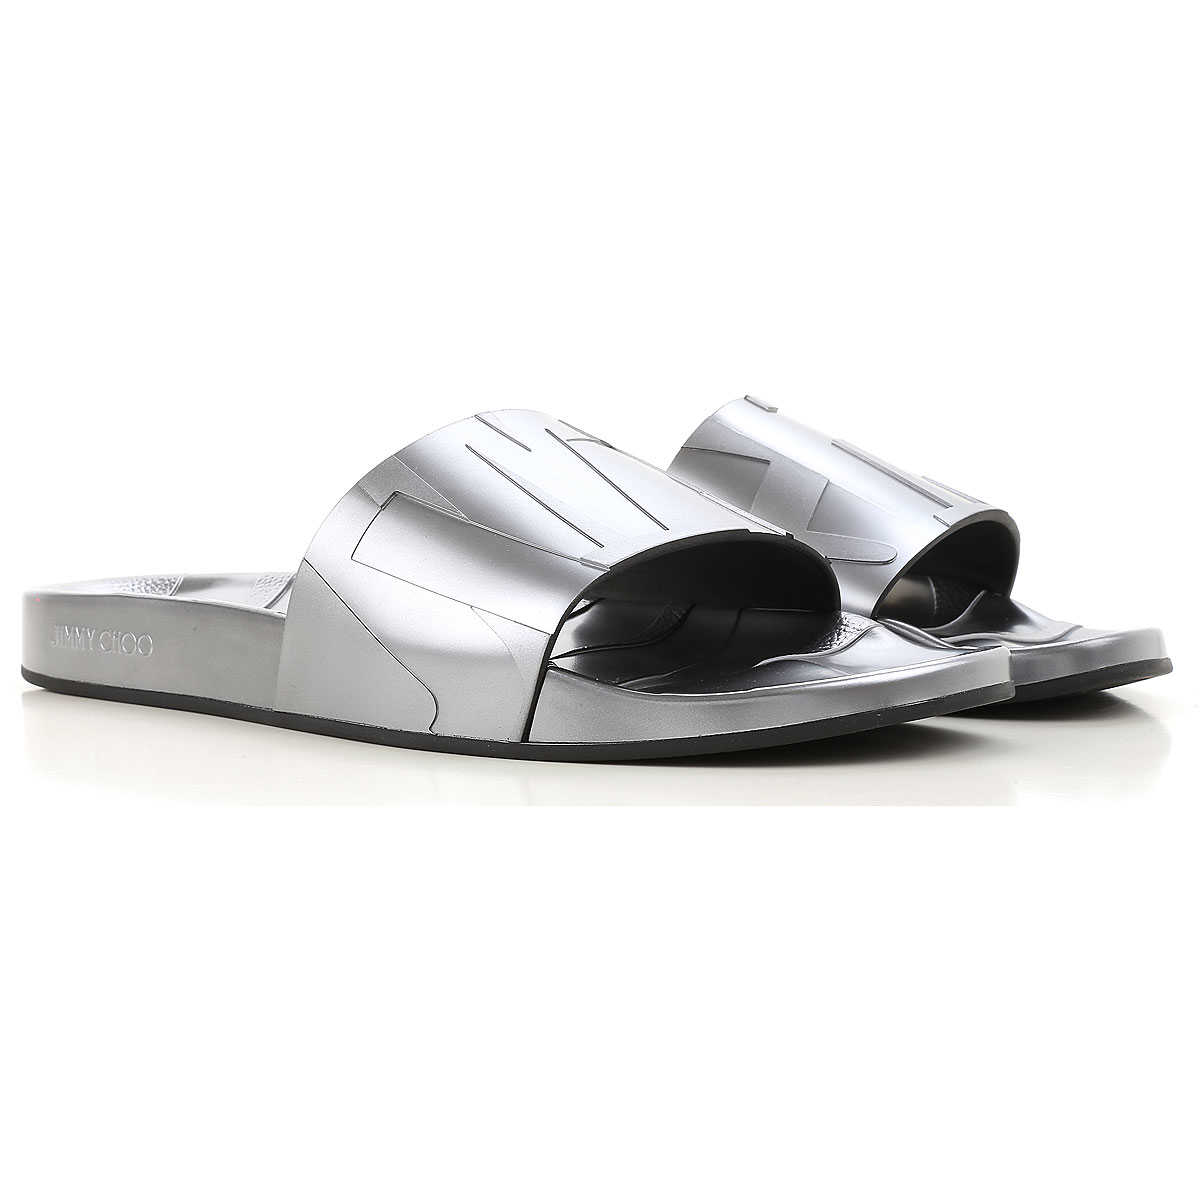 Jimmy Choo Sandals for Men On Sale in Outlet